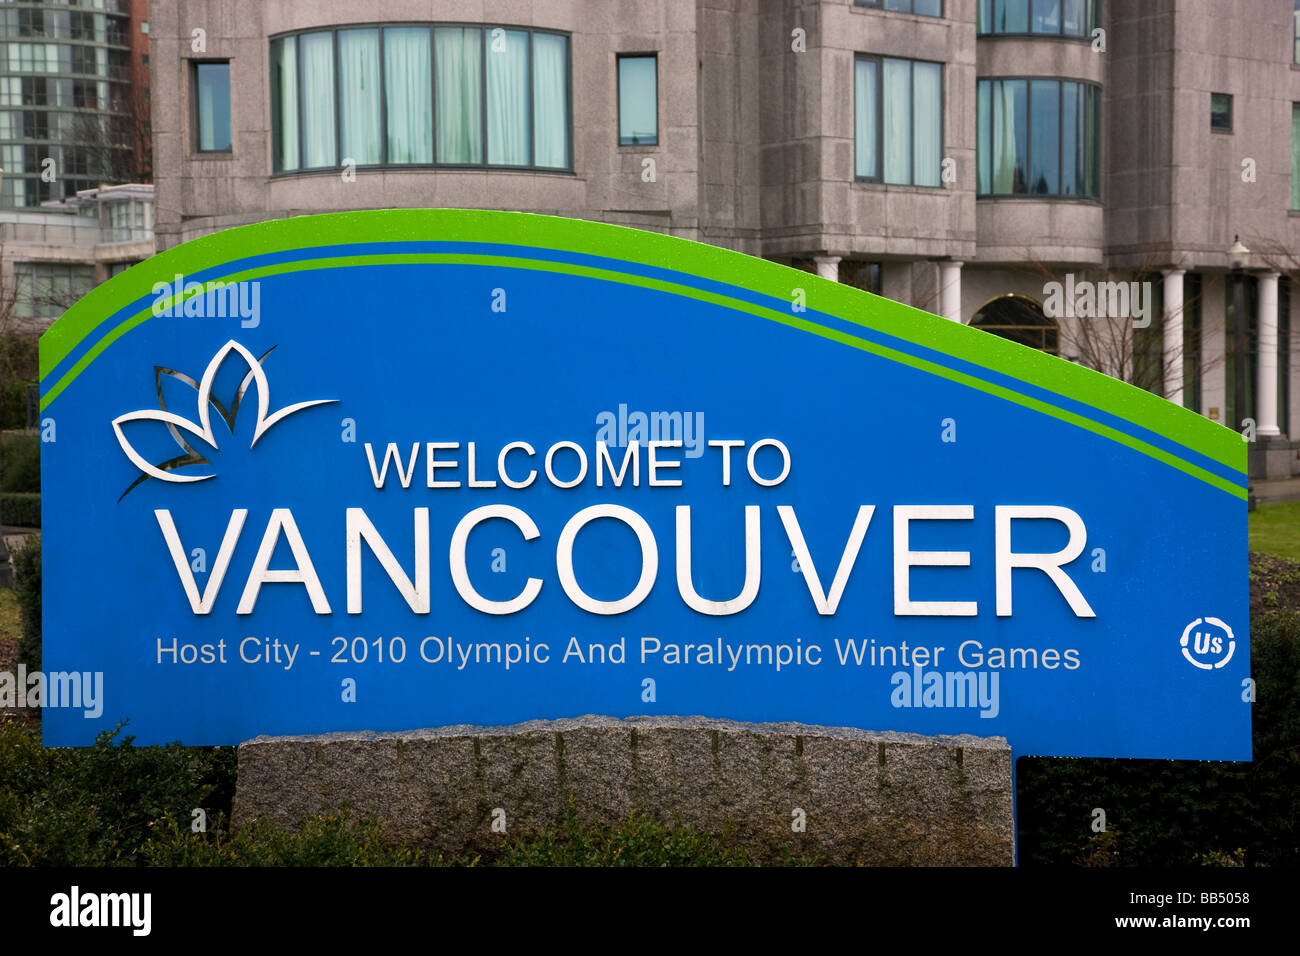 Benefits of Olympic Winter Games Vancouver 2010 still felt in local communities today